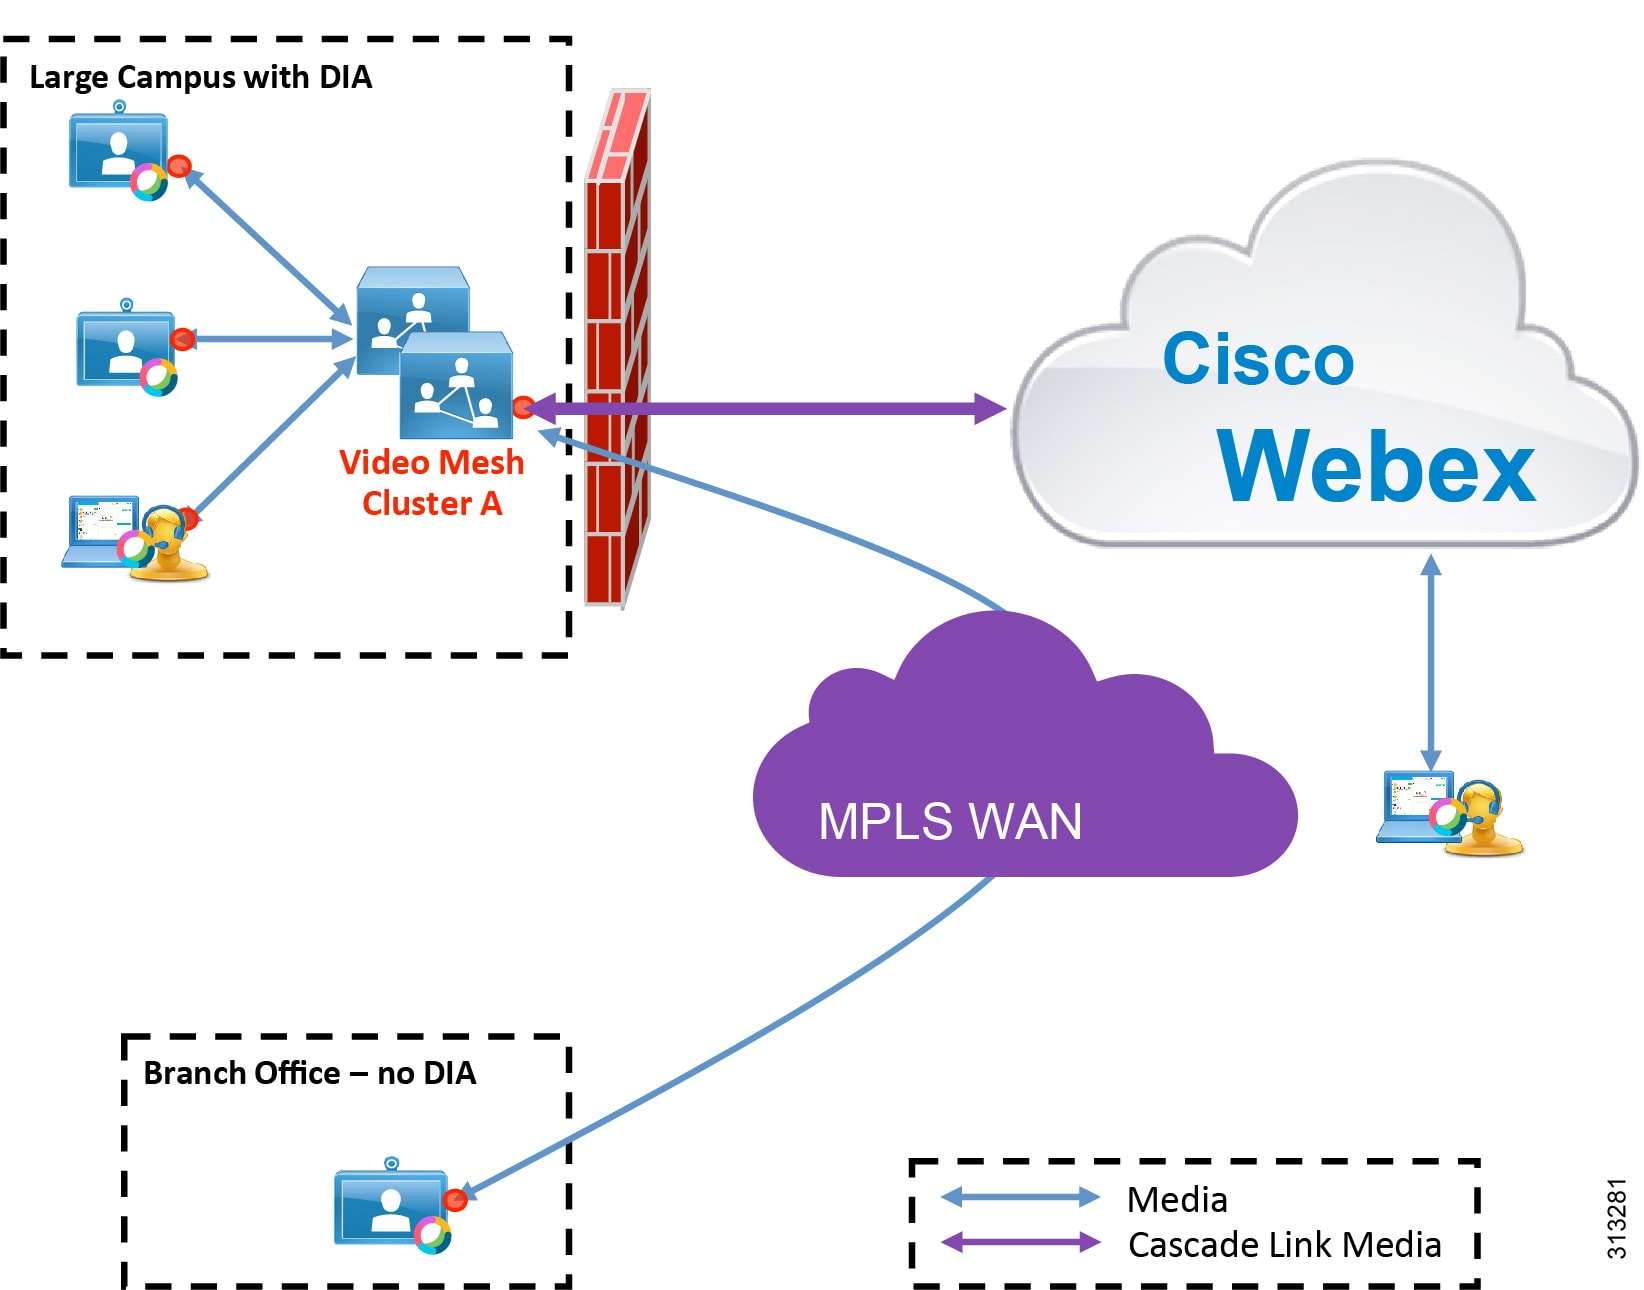 Preferred Architecture For Cisco Webex Hybrid Services Design Quickly Create Highquality Network Diagrams Drawing 313281